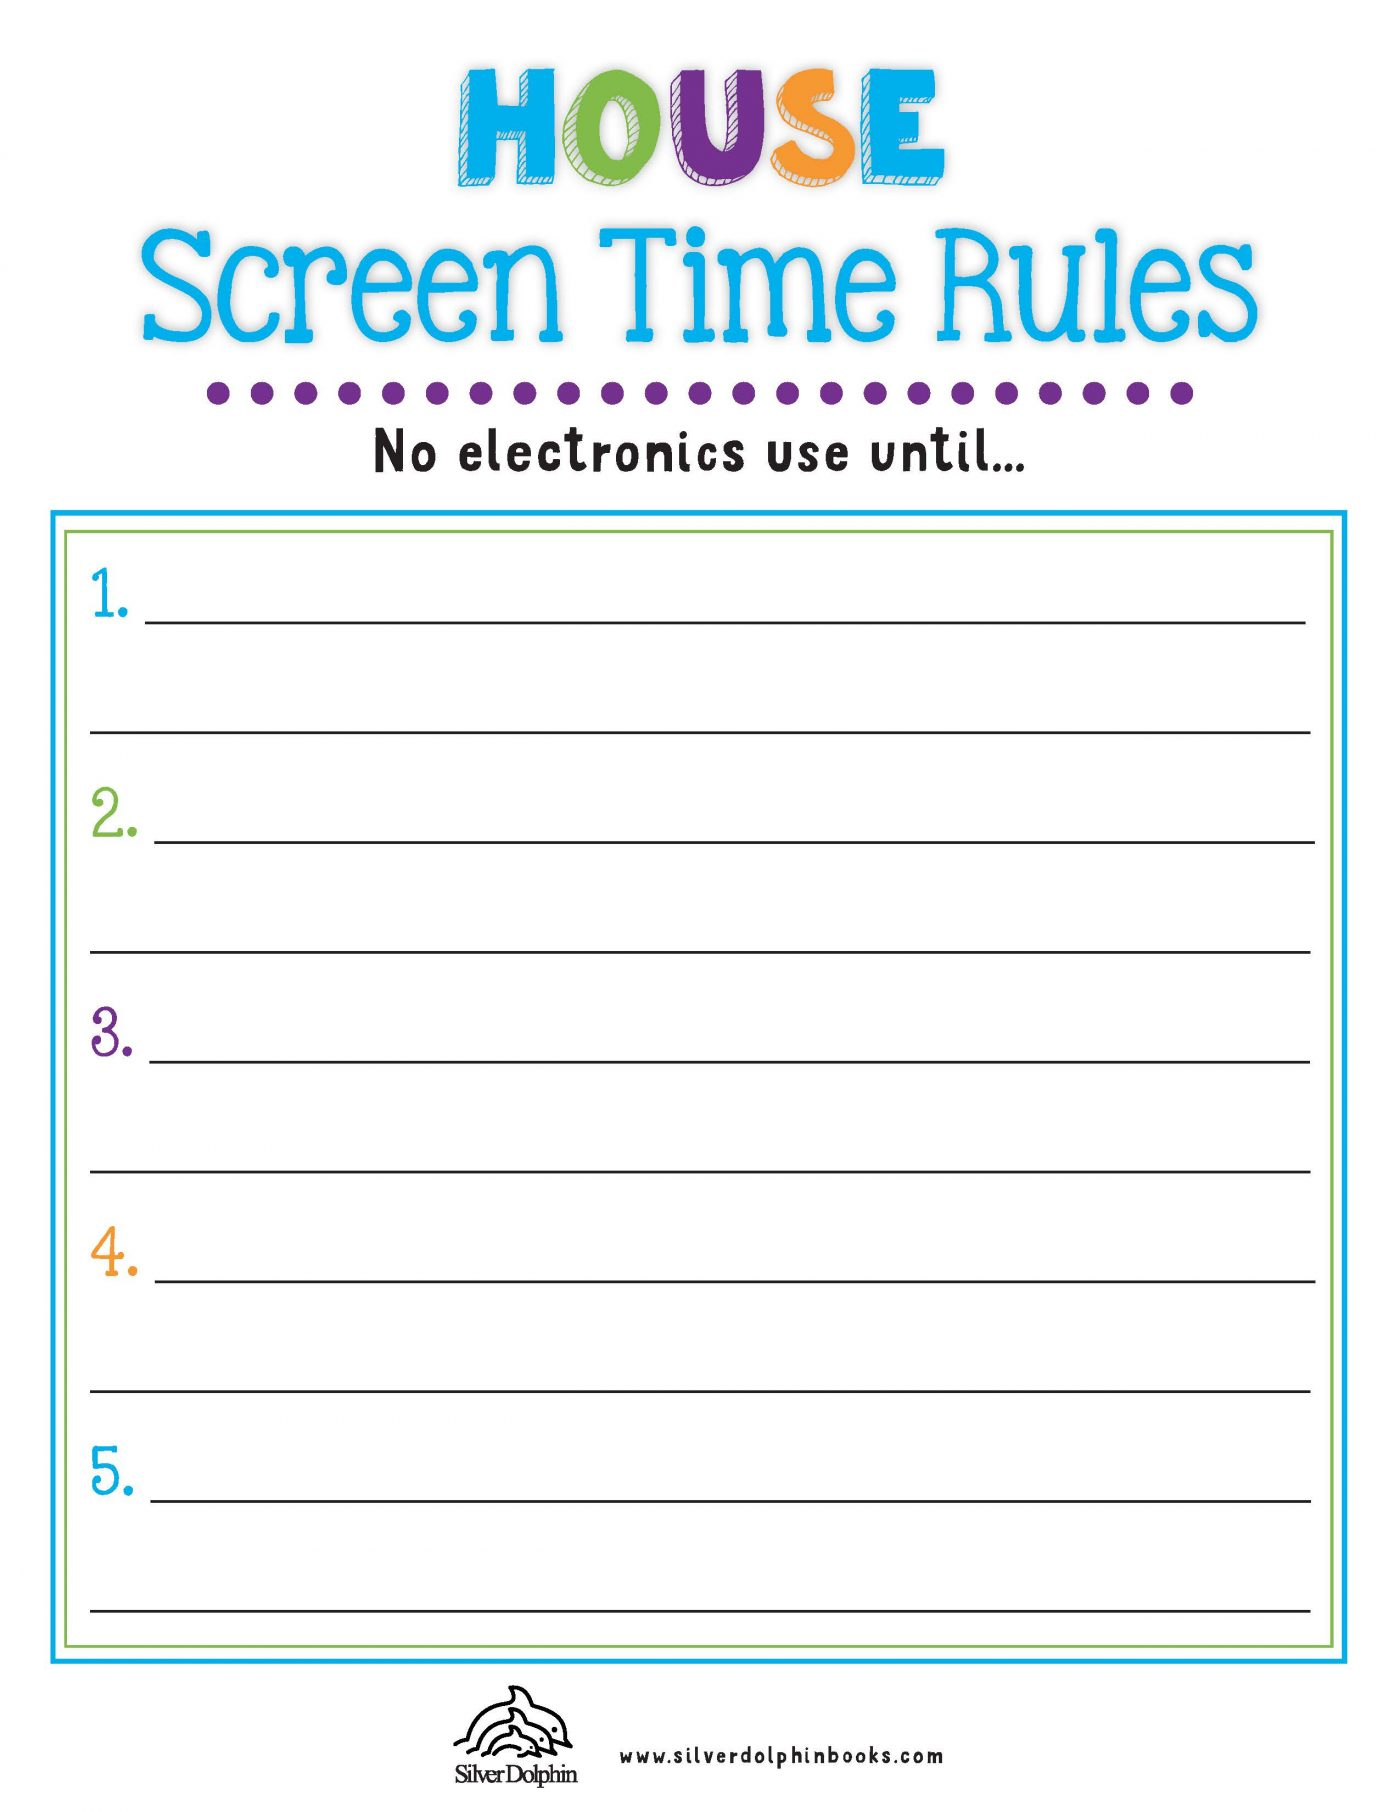 Summer Screen Time Rules Checklists